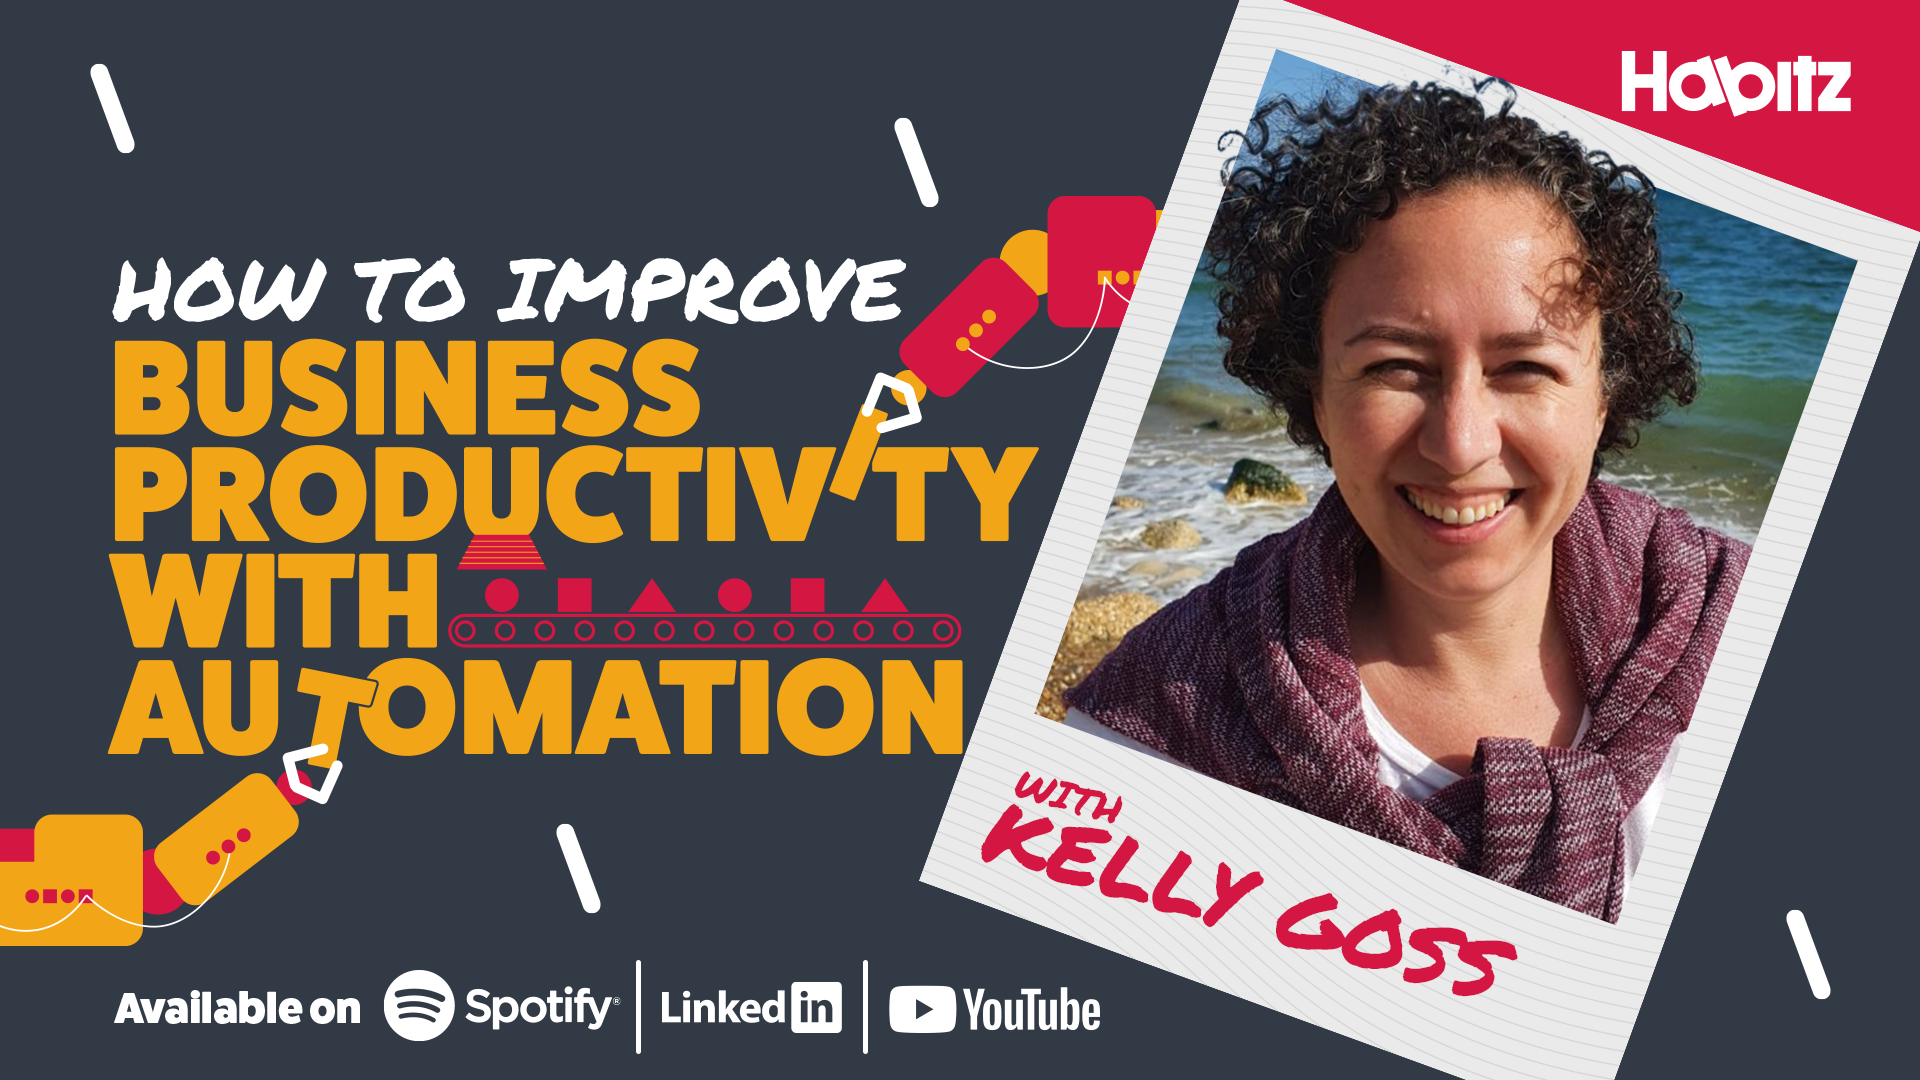 Grey background with overlaid text which says 'How to improve business productivity with automation' with a polaroid-style photo of Kelly Goss and icons below for Spotify, LinkedIn and YouTube.